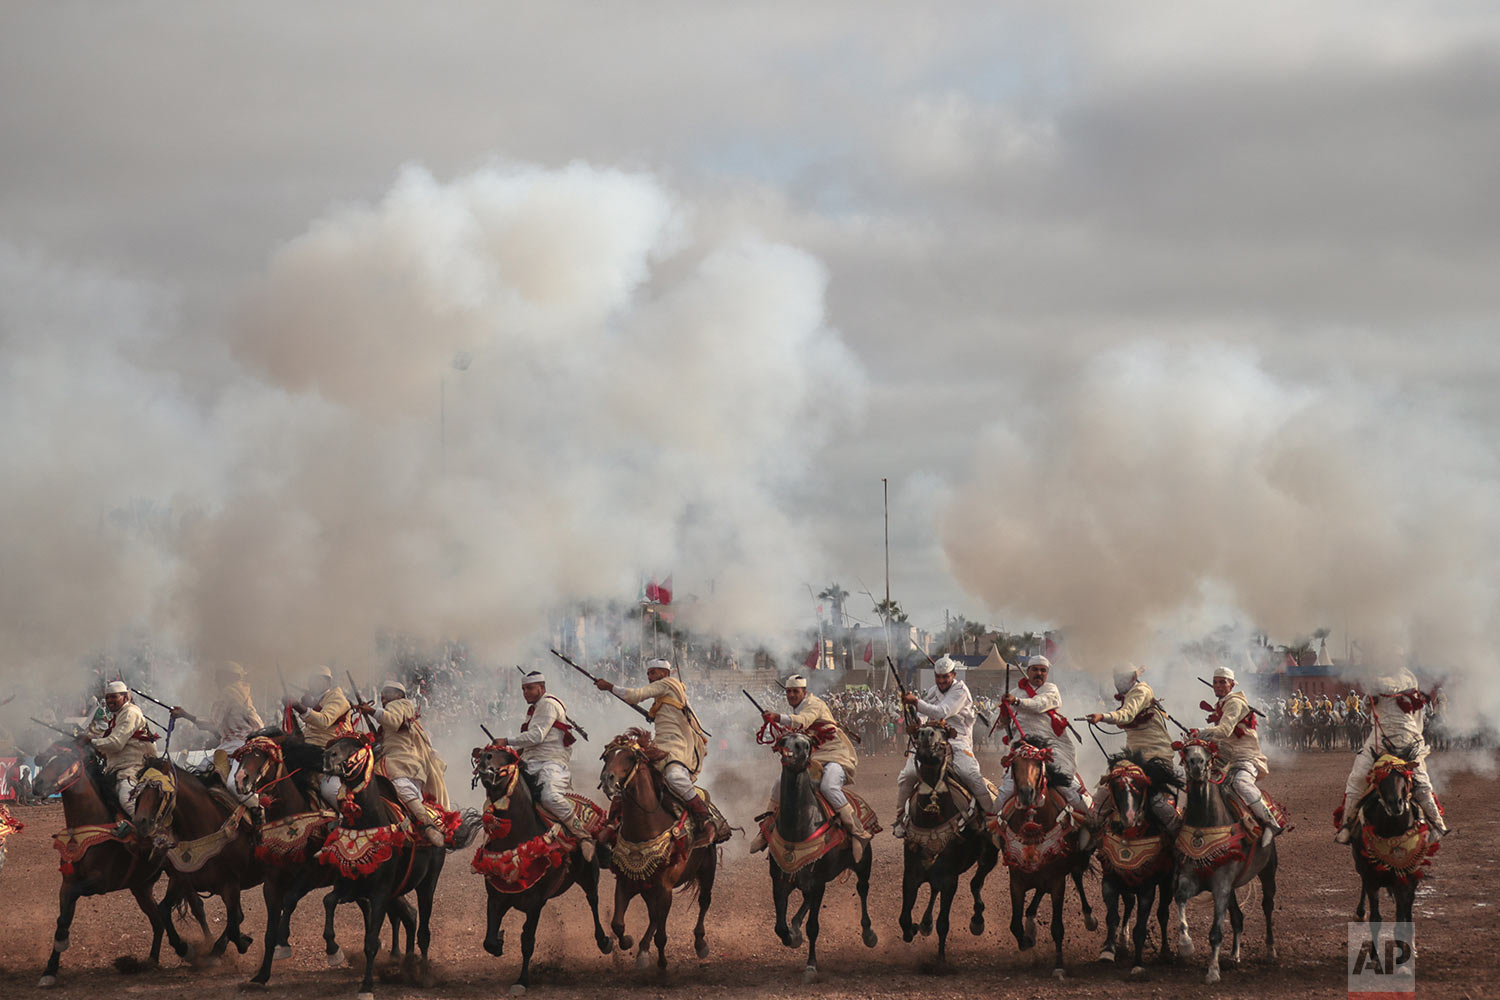 A troupe charges and fire their rifles during Tabourida, a traditional horse riding show also known as Fantasia, in the coastal town of El Jadida, Morocco, July 25, 2019. (AP Photo/Mosa'ab Elshamy)